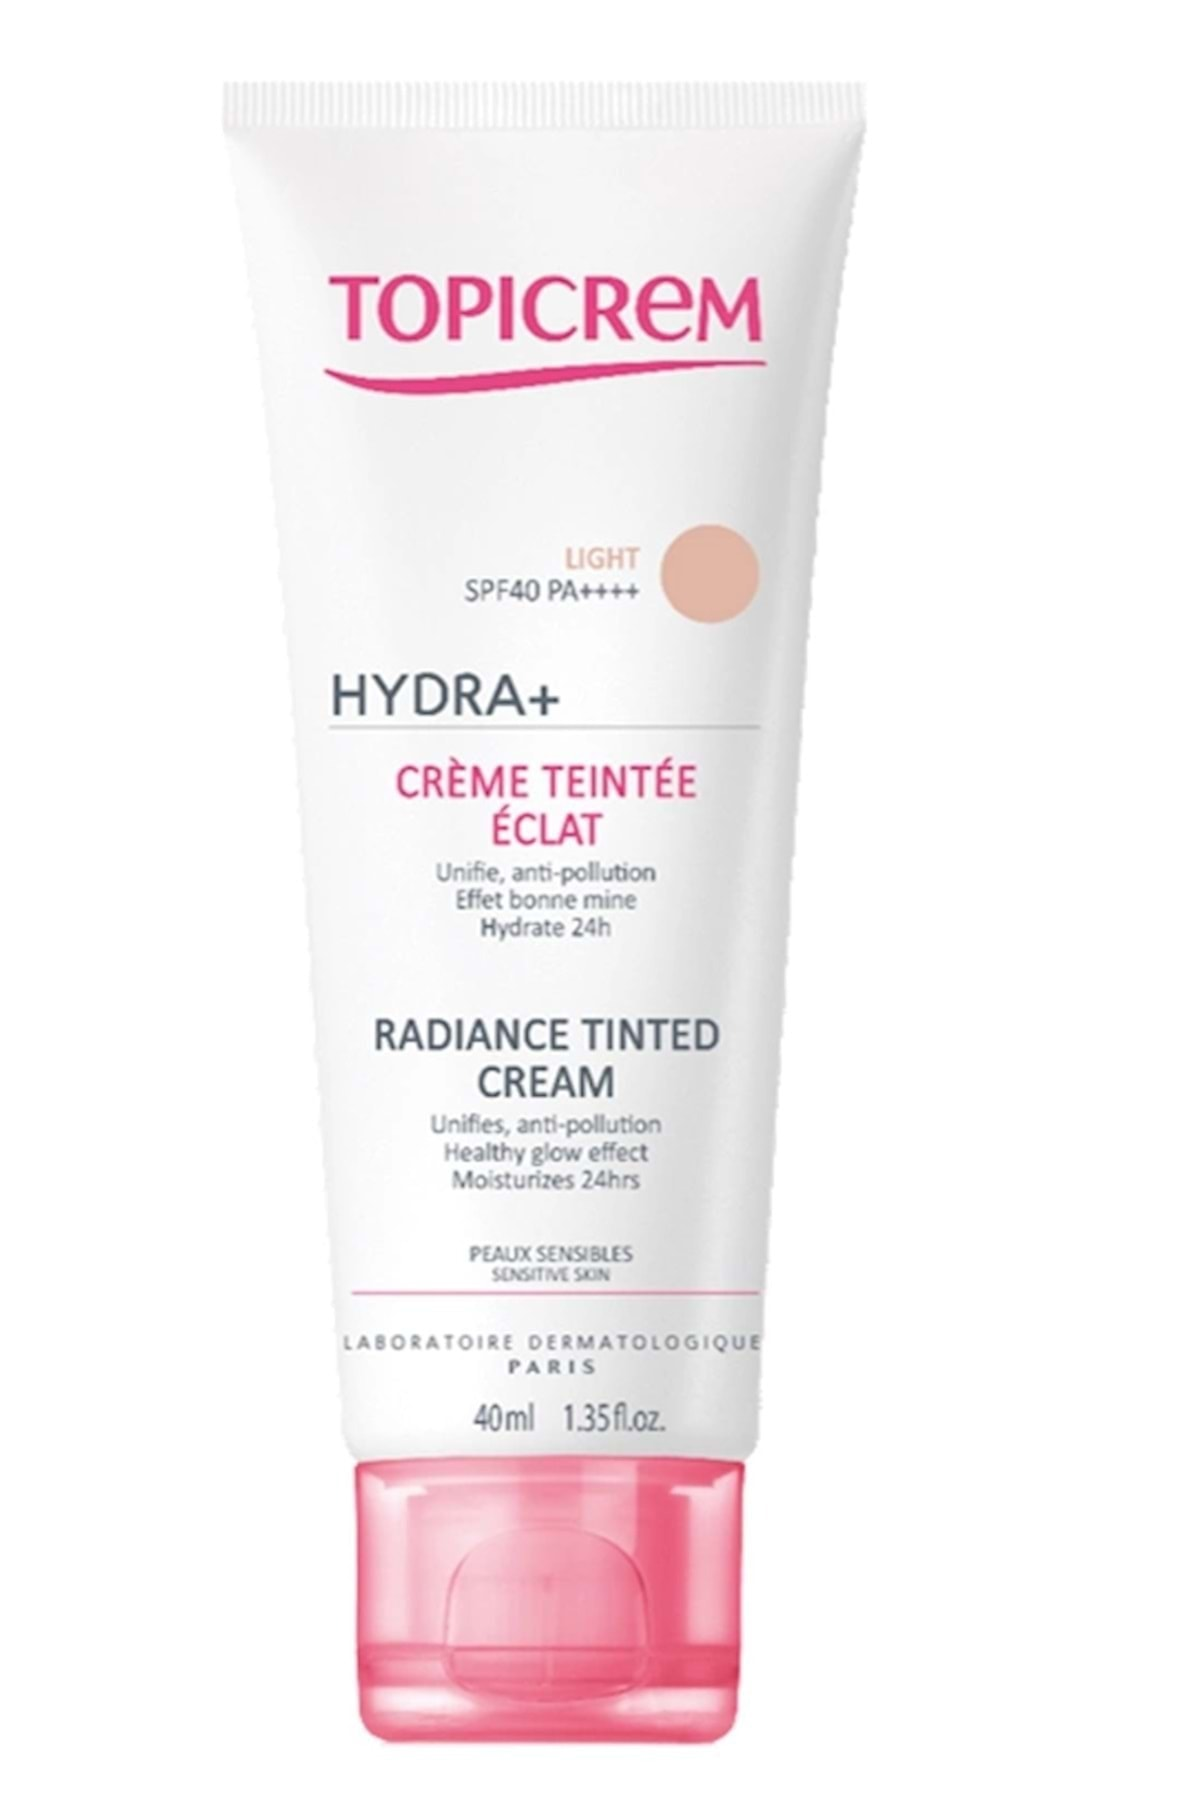 Topicrem Hydra+ Radiance Tinted Light Spf40 Cream 40ml 1